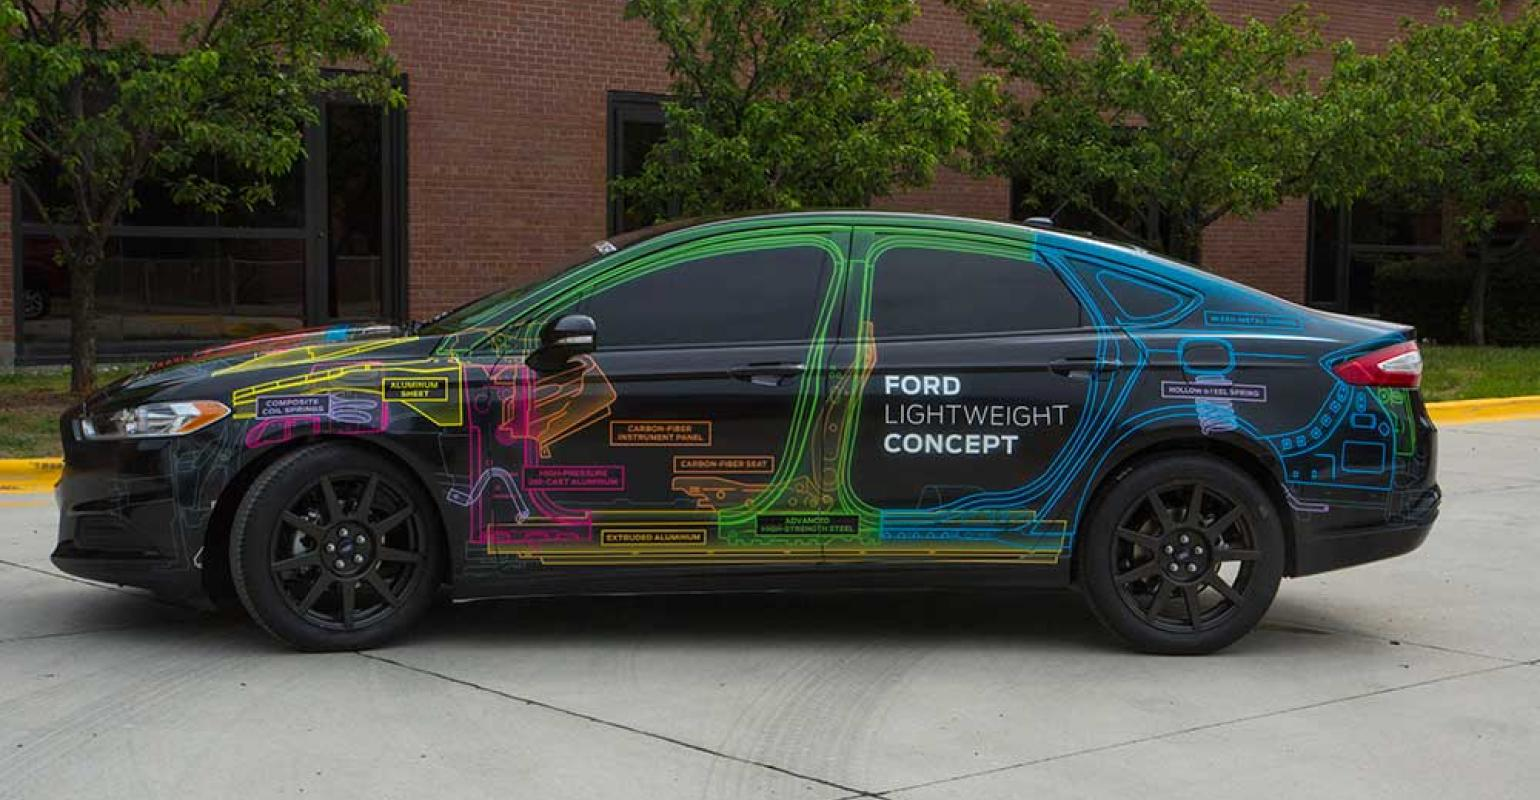 Ford Concept Car Takes Lightweighting To Extreme Wardsauto